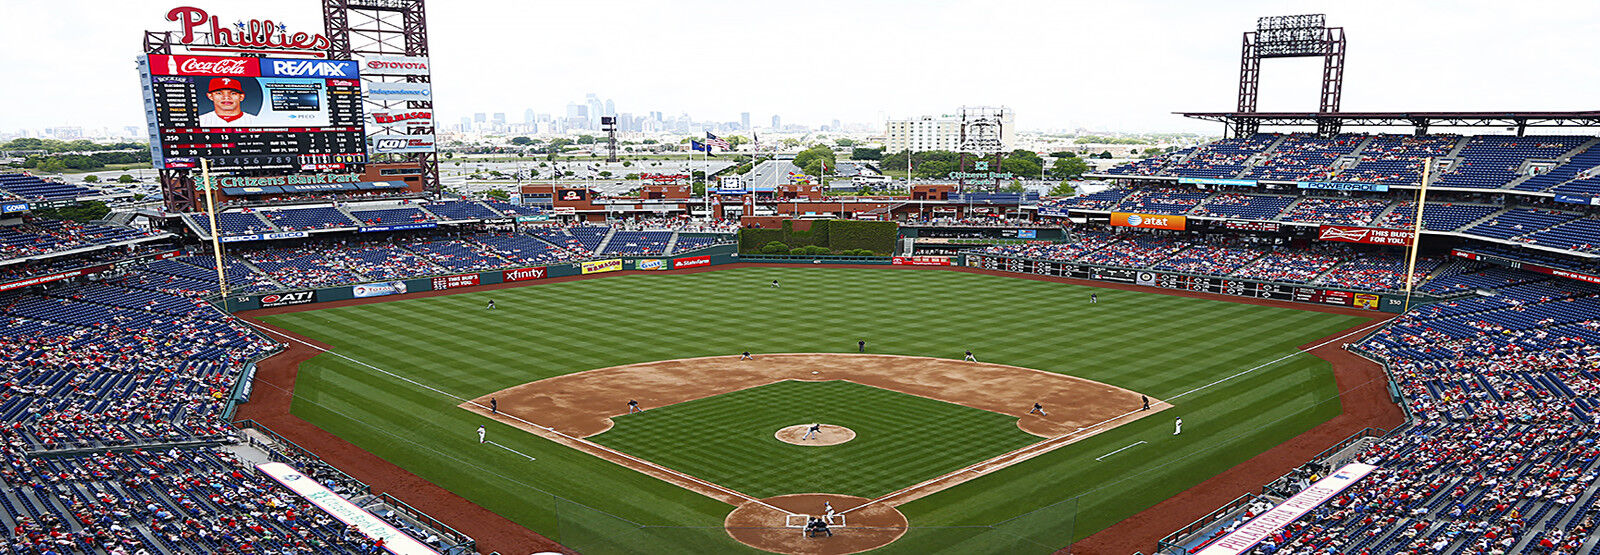 New York Mets at Philadelphia Phillies Tickets (Country Postgame Concert - Old Dominion)